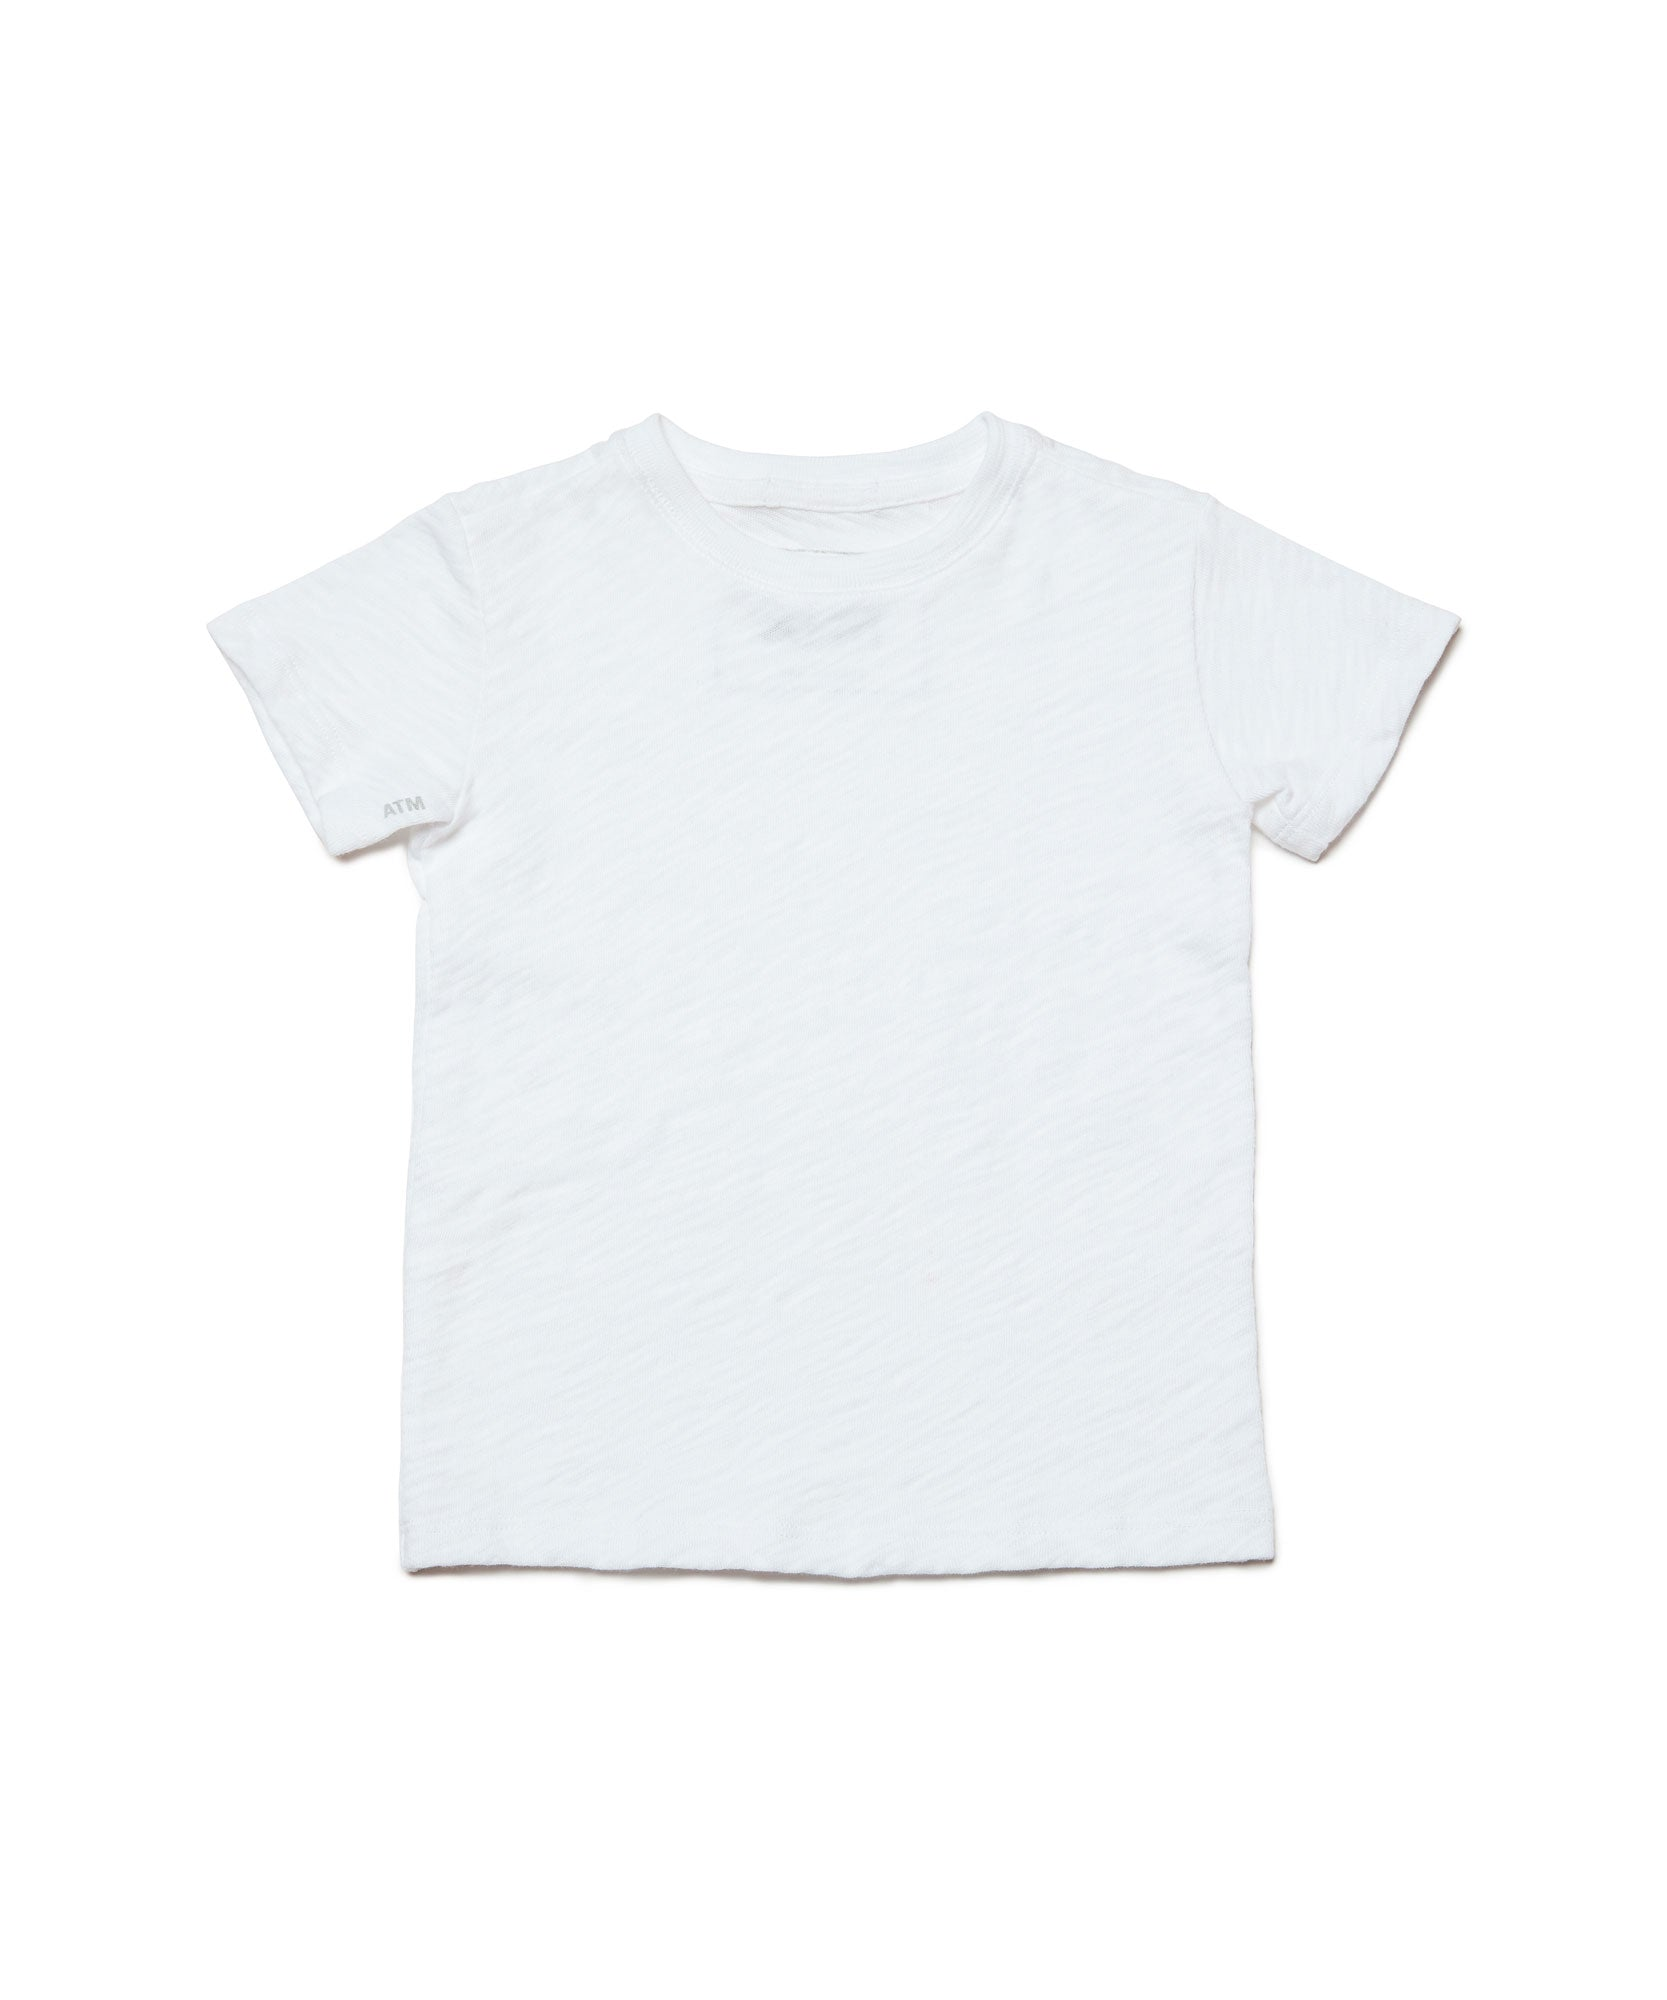 White Big Kids Slub Jersey Short Sleeve Tee - Kid's Cotton Short Sleeve Tee by ATM Anthony Thomas Melillo